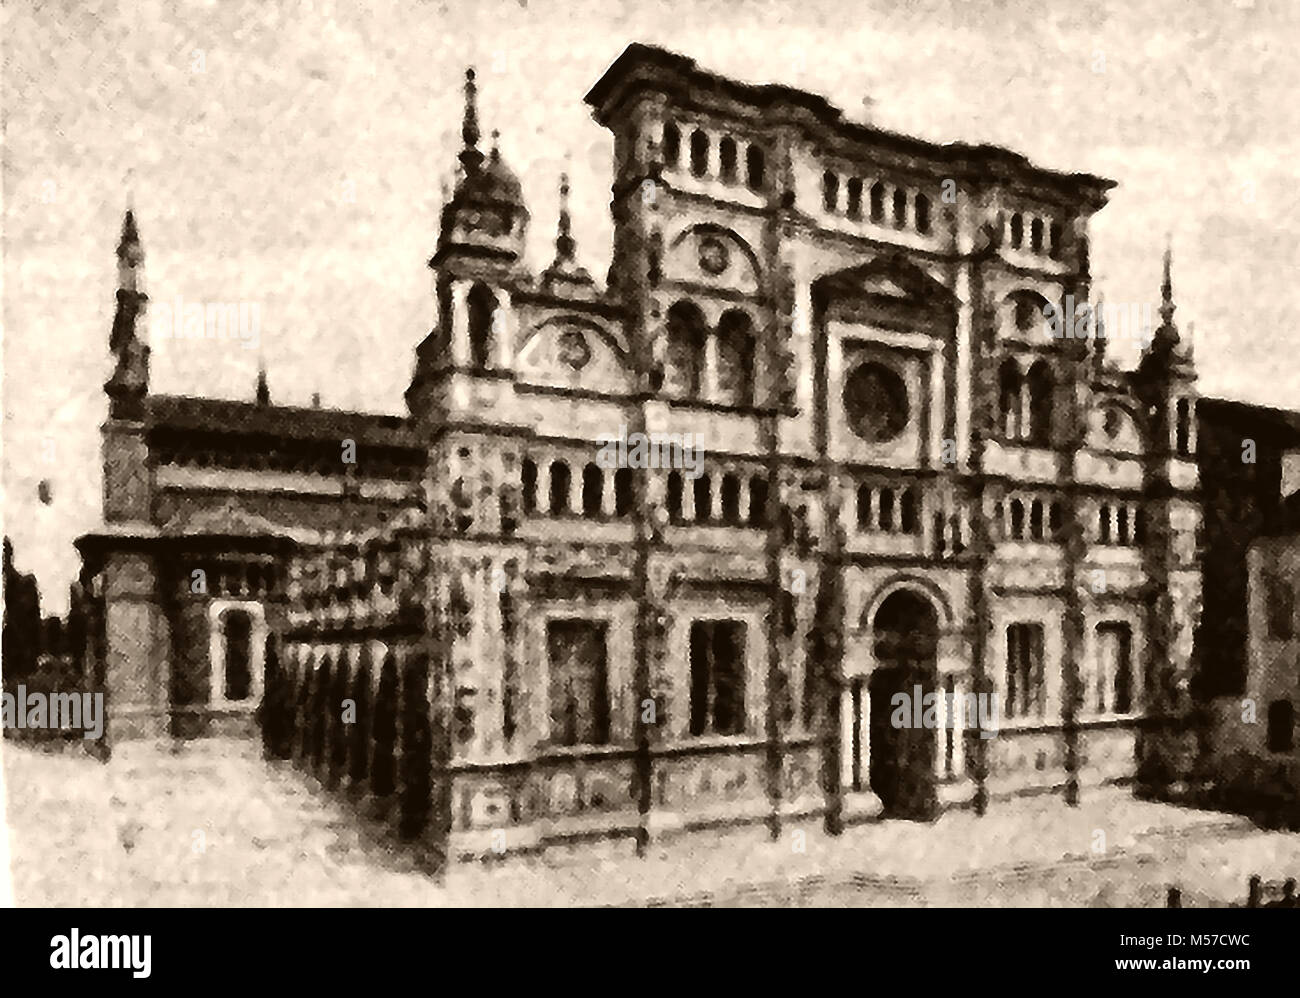 A 1921 image of the facade of the Certosa or Carthusian Monastery, Pavia, Italy (completed C1465) - Stock Image